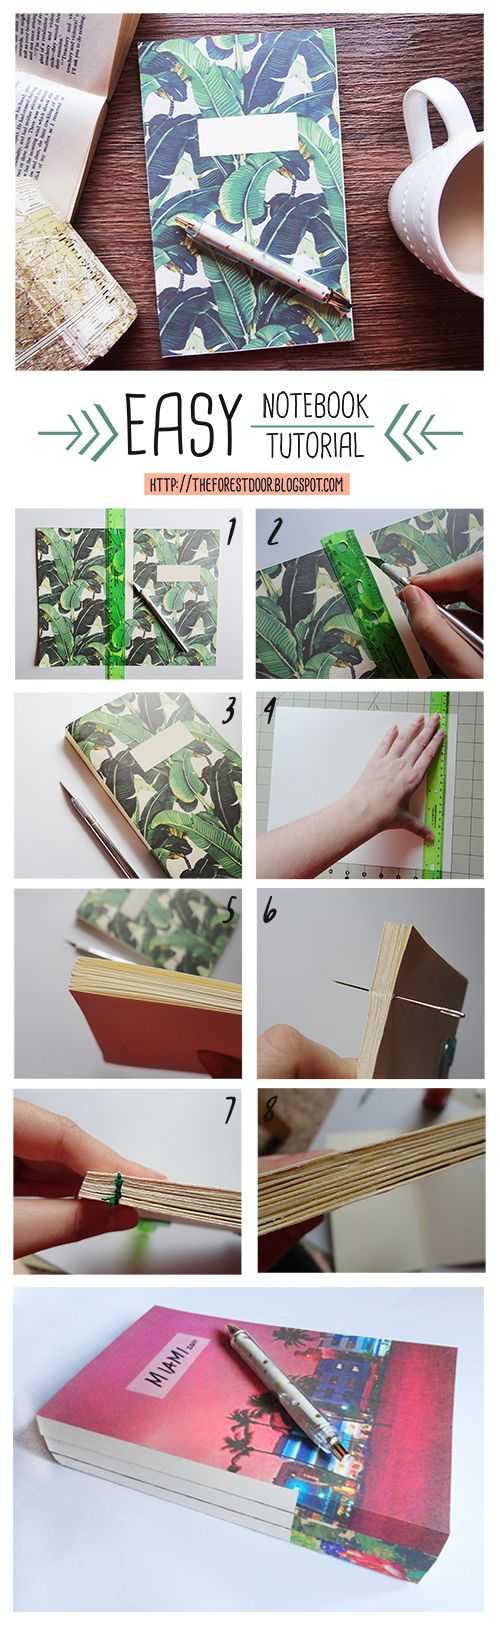 Easy Notebook DIY Tutorial Book binding from TheForestDoor - a DIY, Lifestyle, and Design blog Travel journal idea